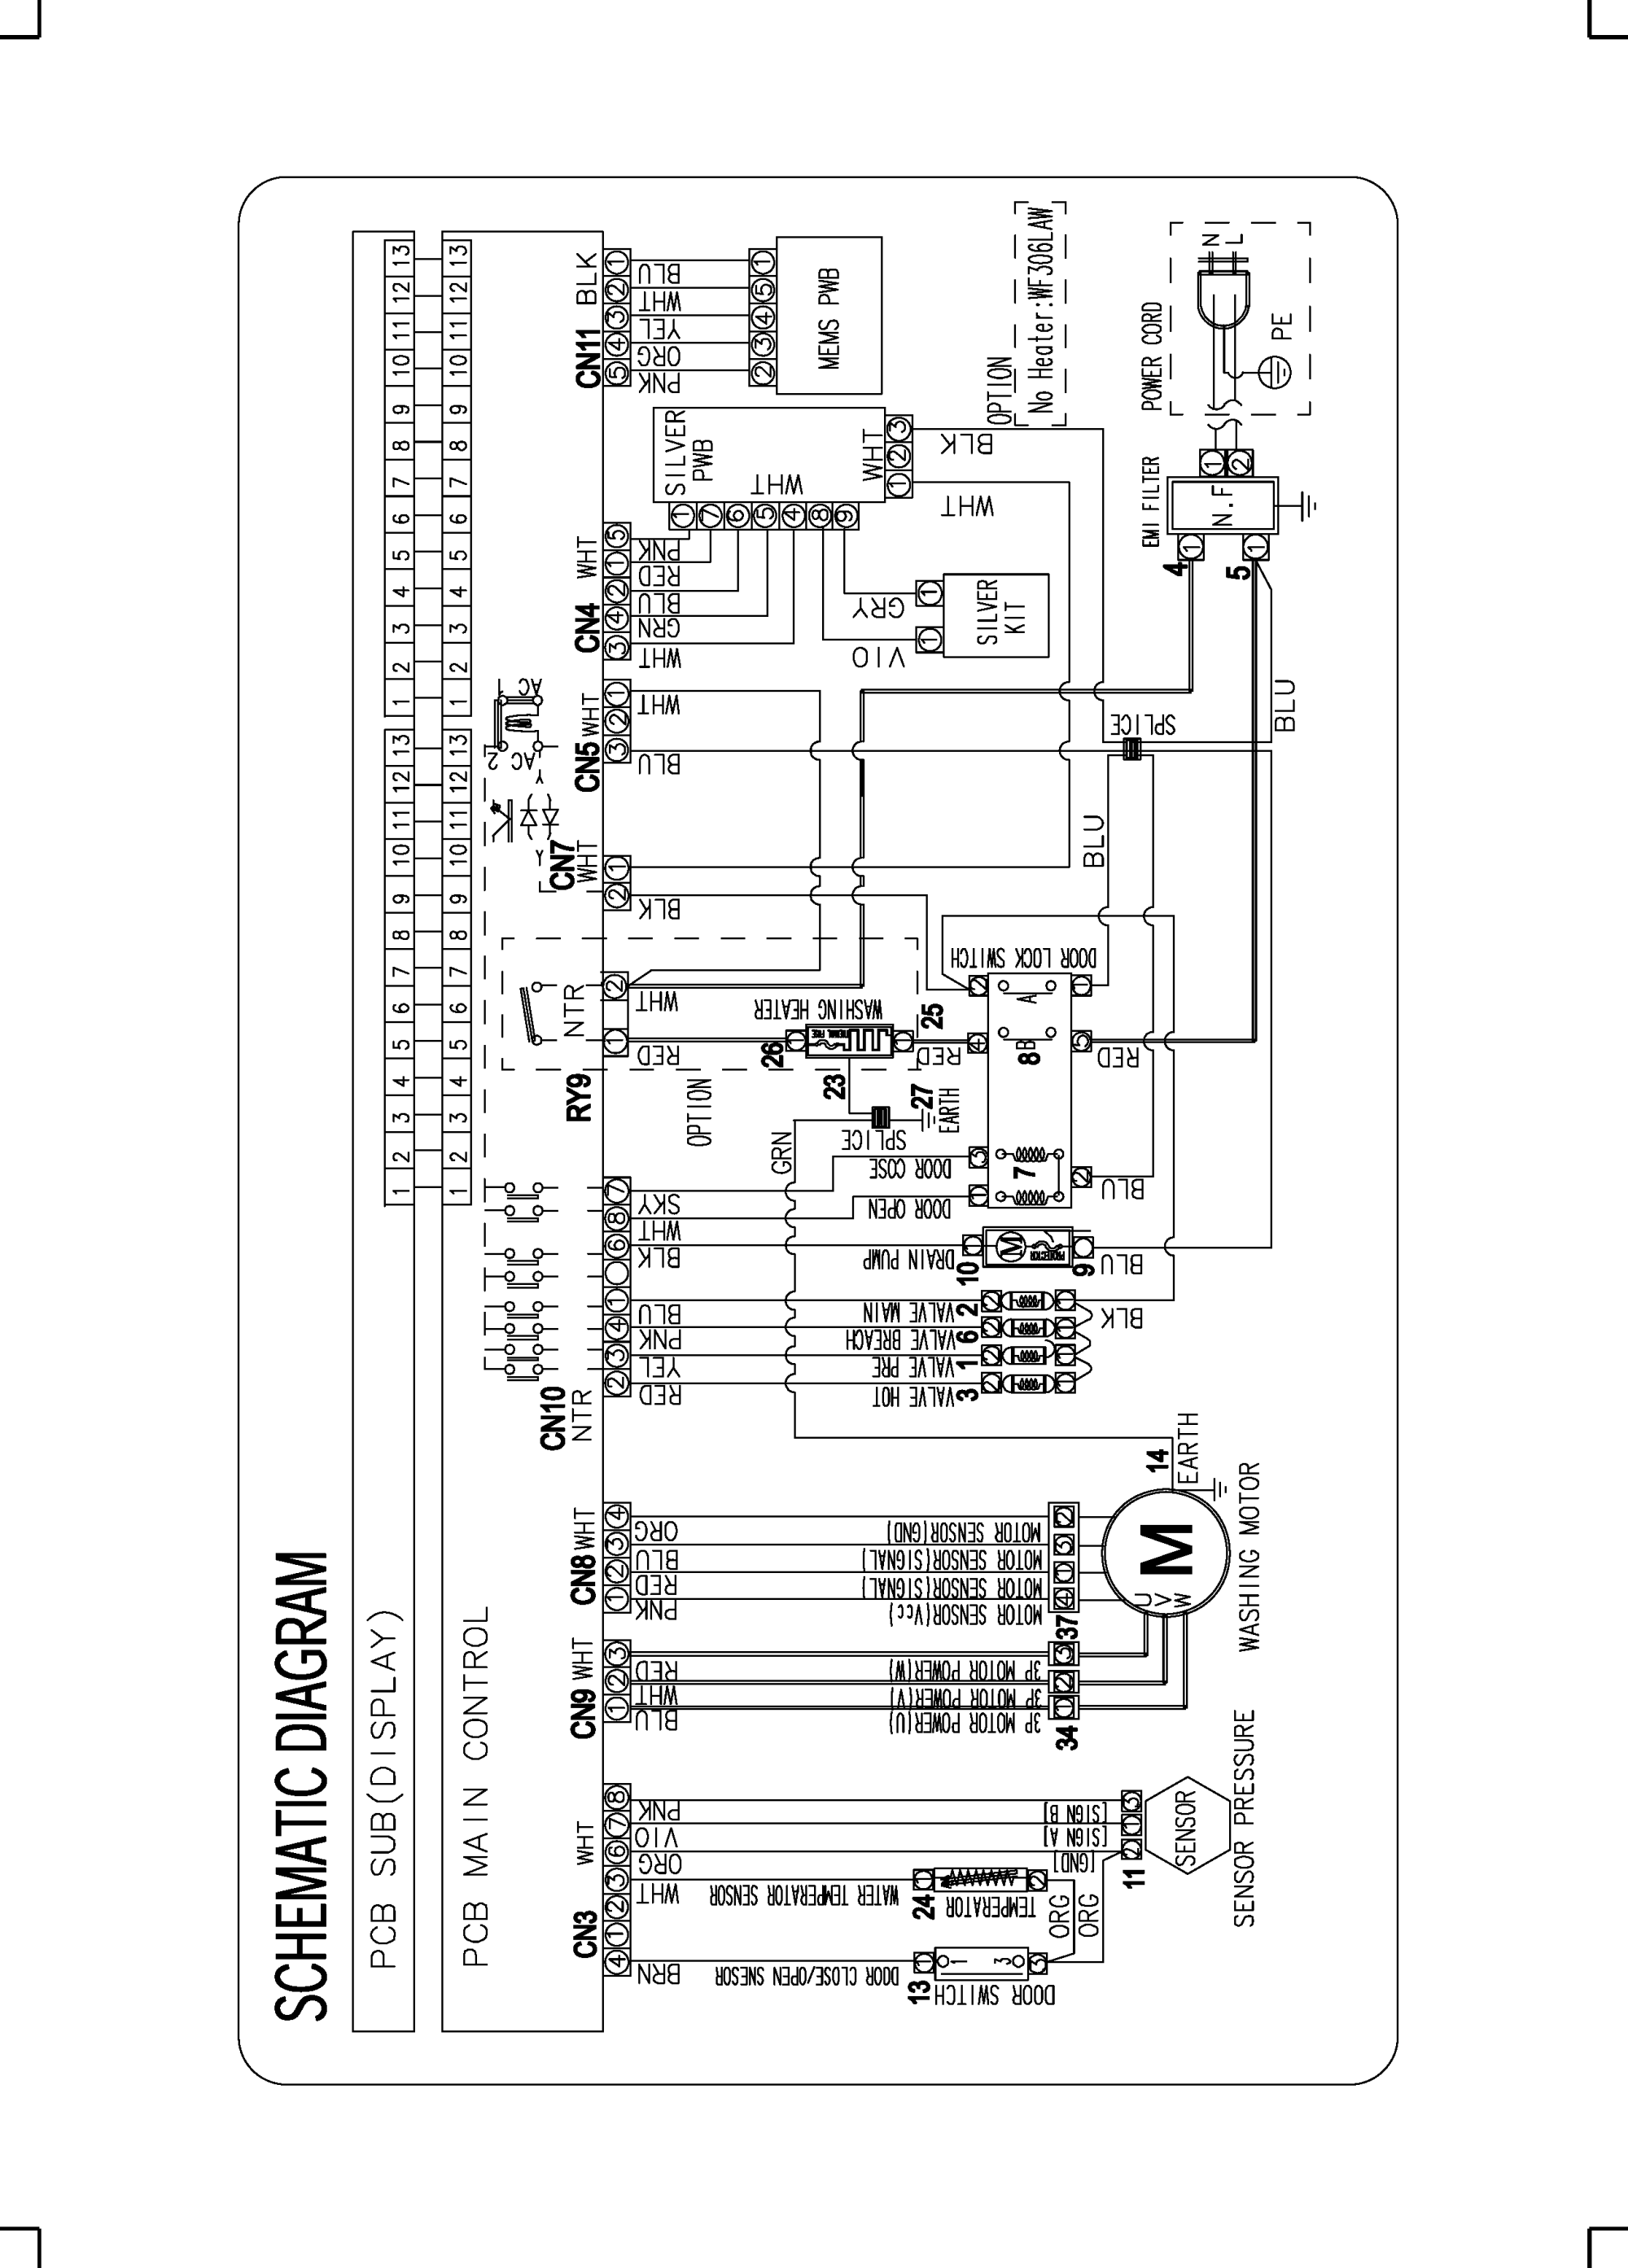 hight resolution of samsung wire harness diagram wiring diagram basic samsung wire harness diagram